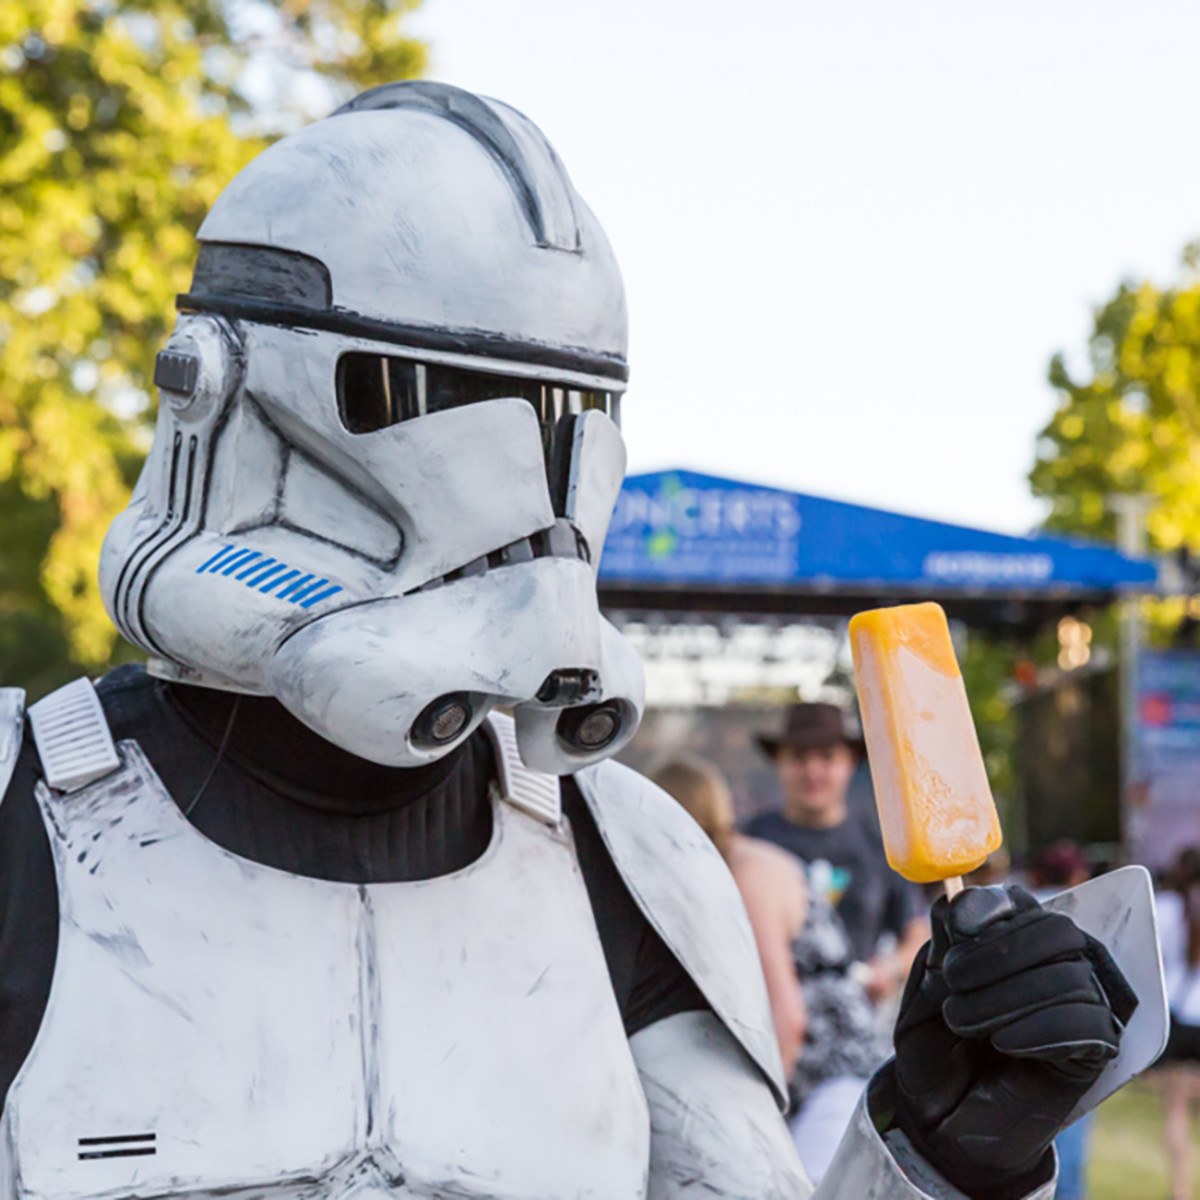 2019 Concerts in the Garden: Star Wars & Beyond: A Sci-Fi Laser Light Spectacular